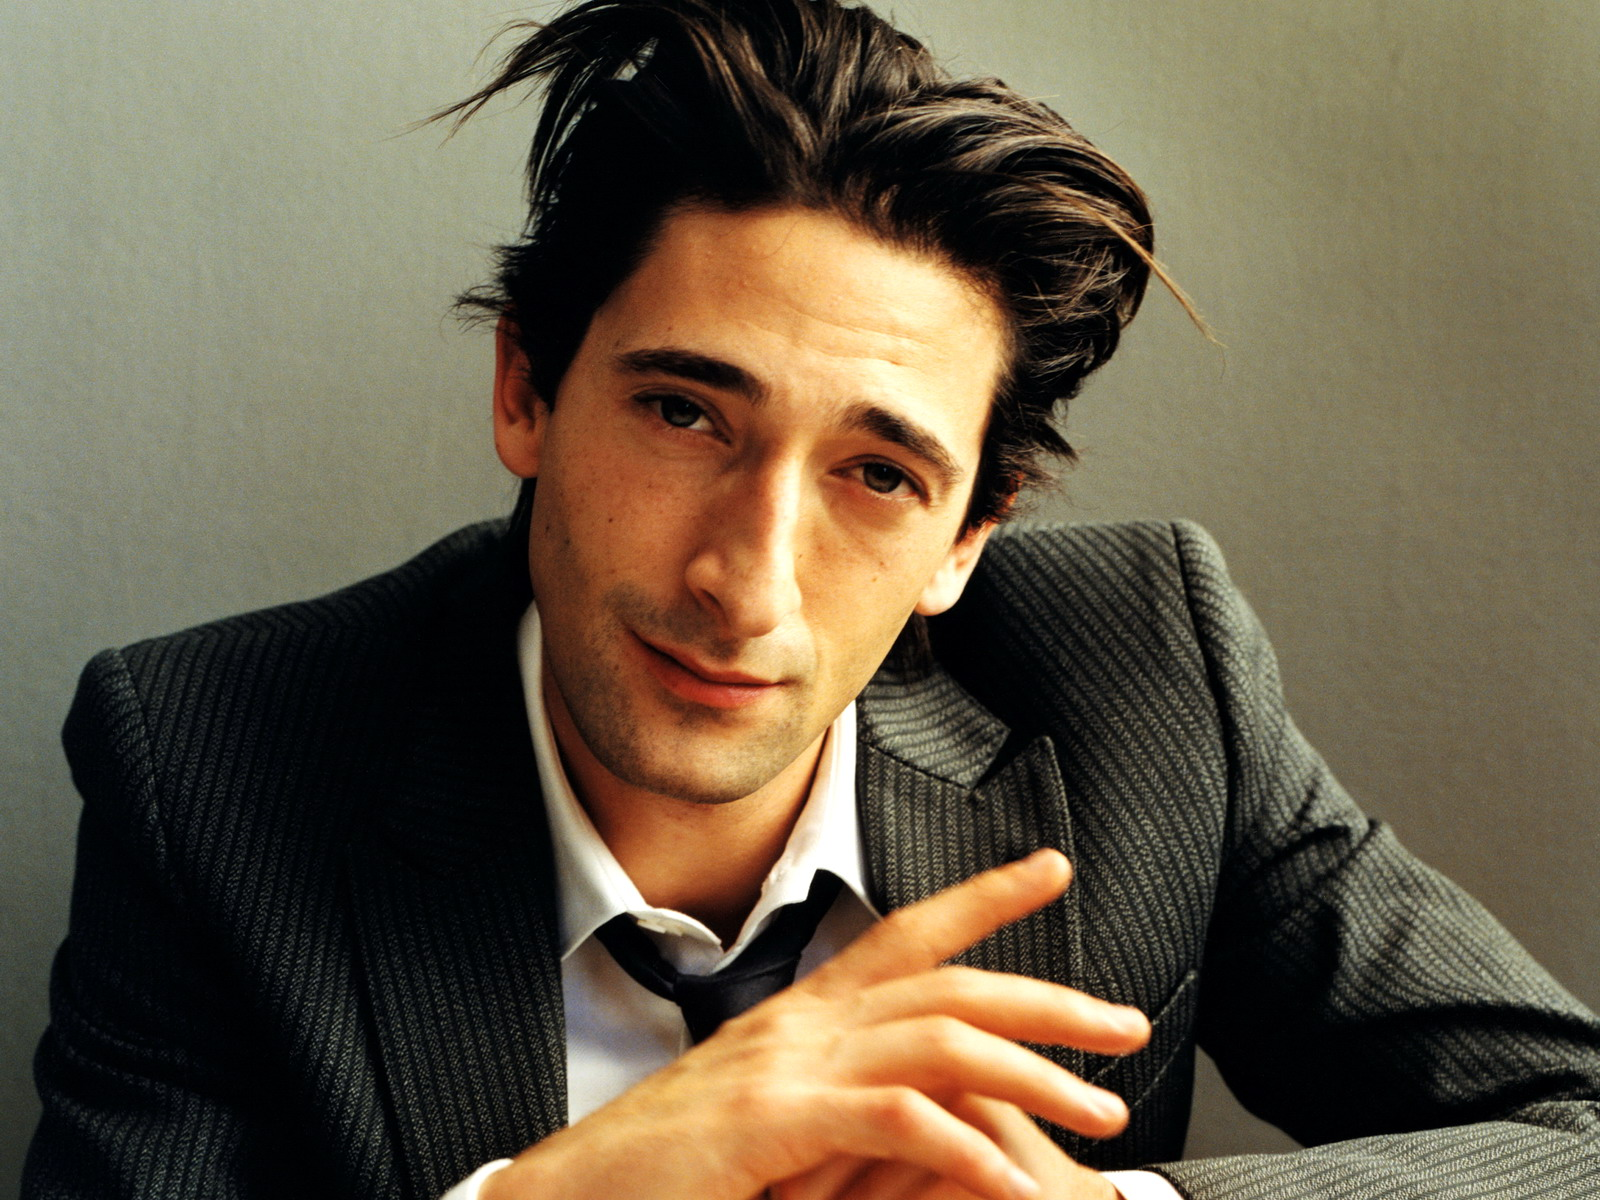 Adrien Brody Wallpapers High Quality | Download Free Adrien Brody